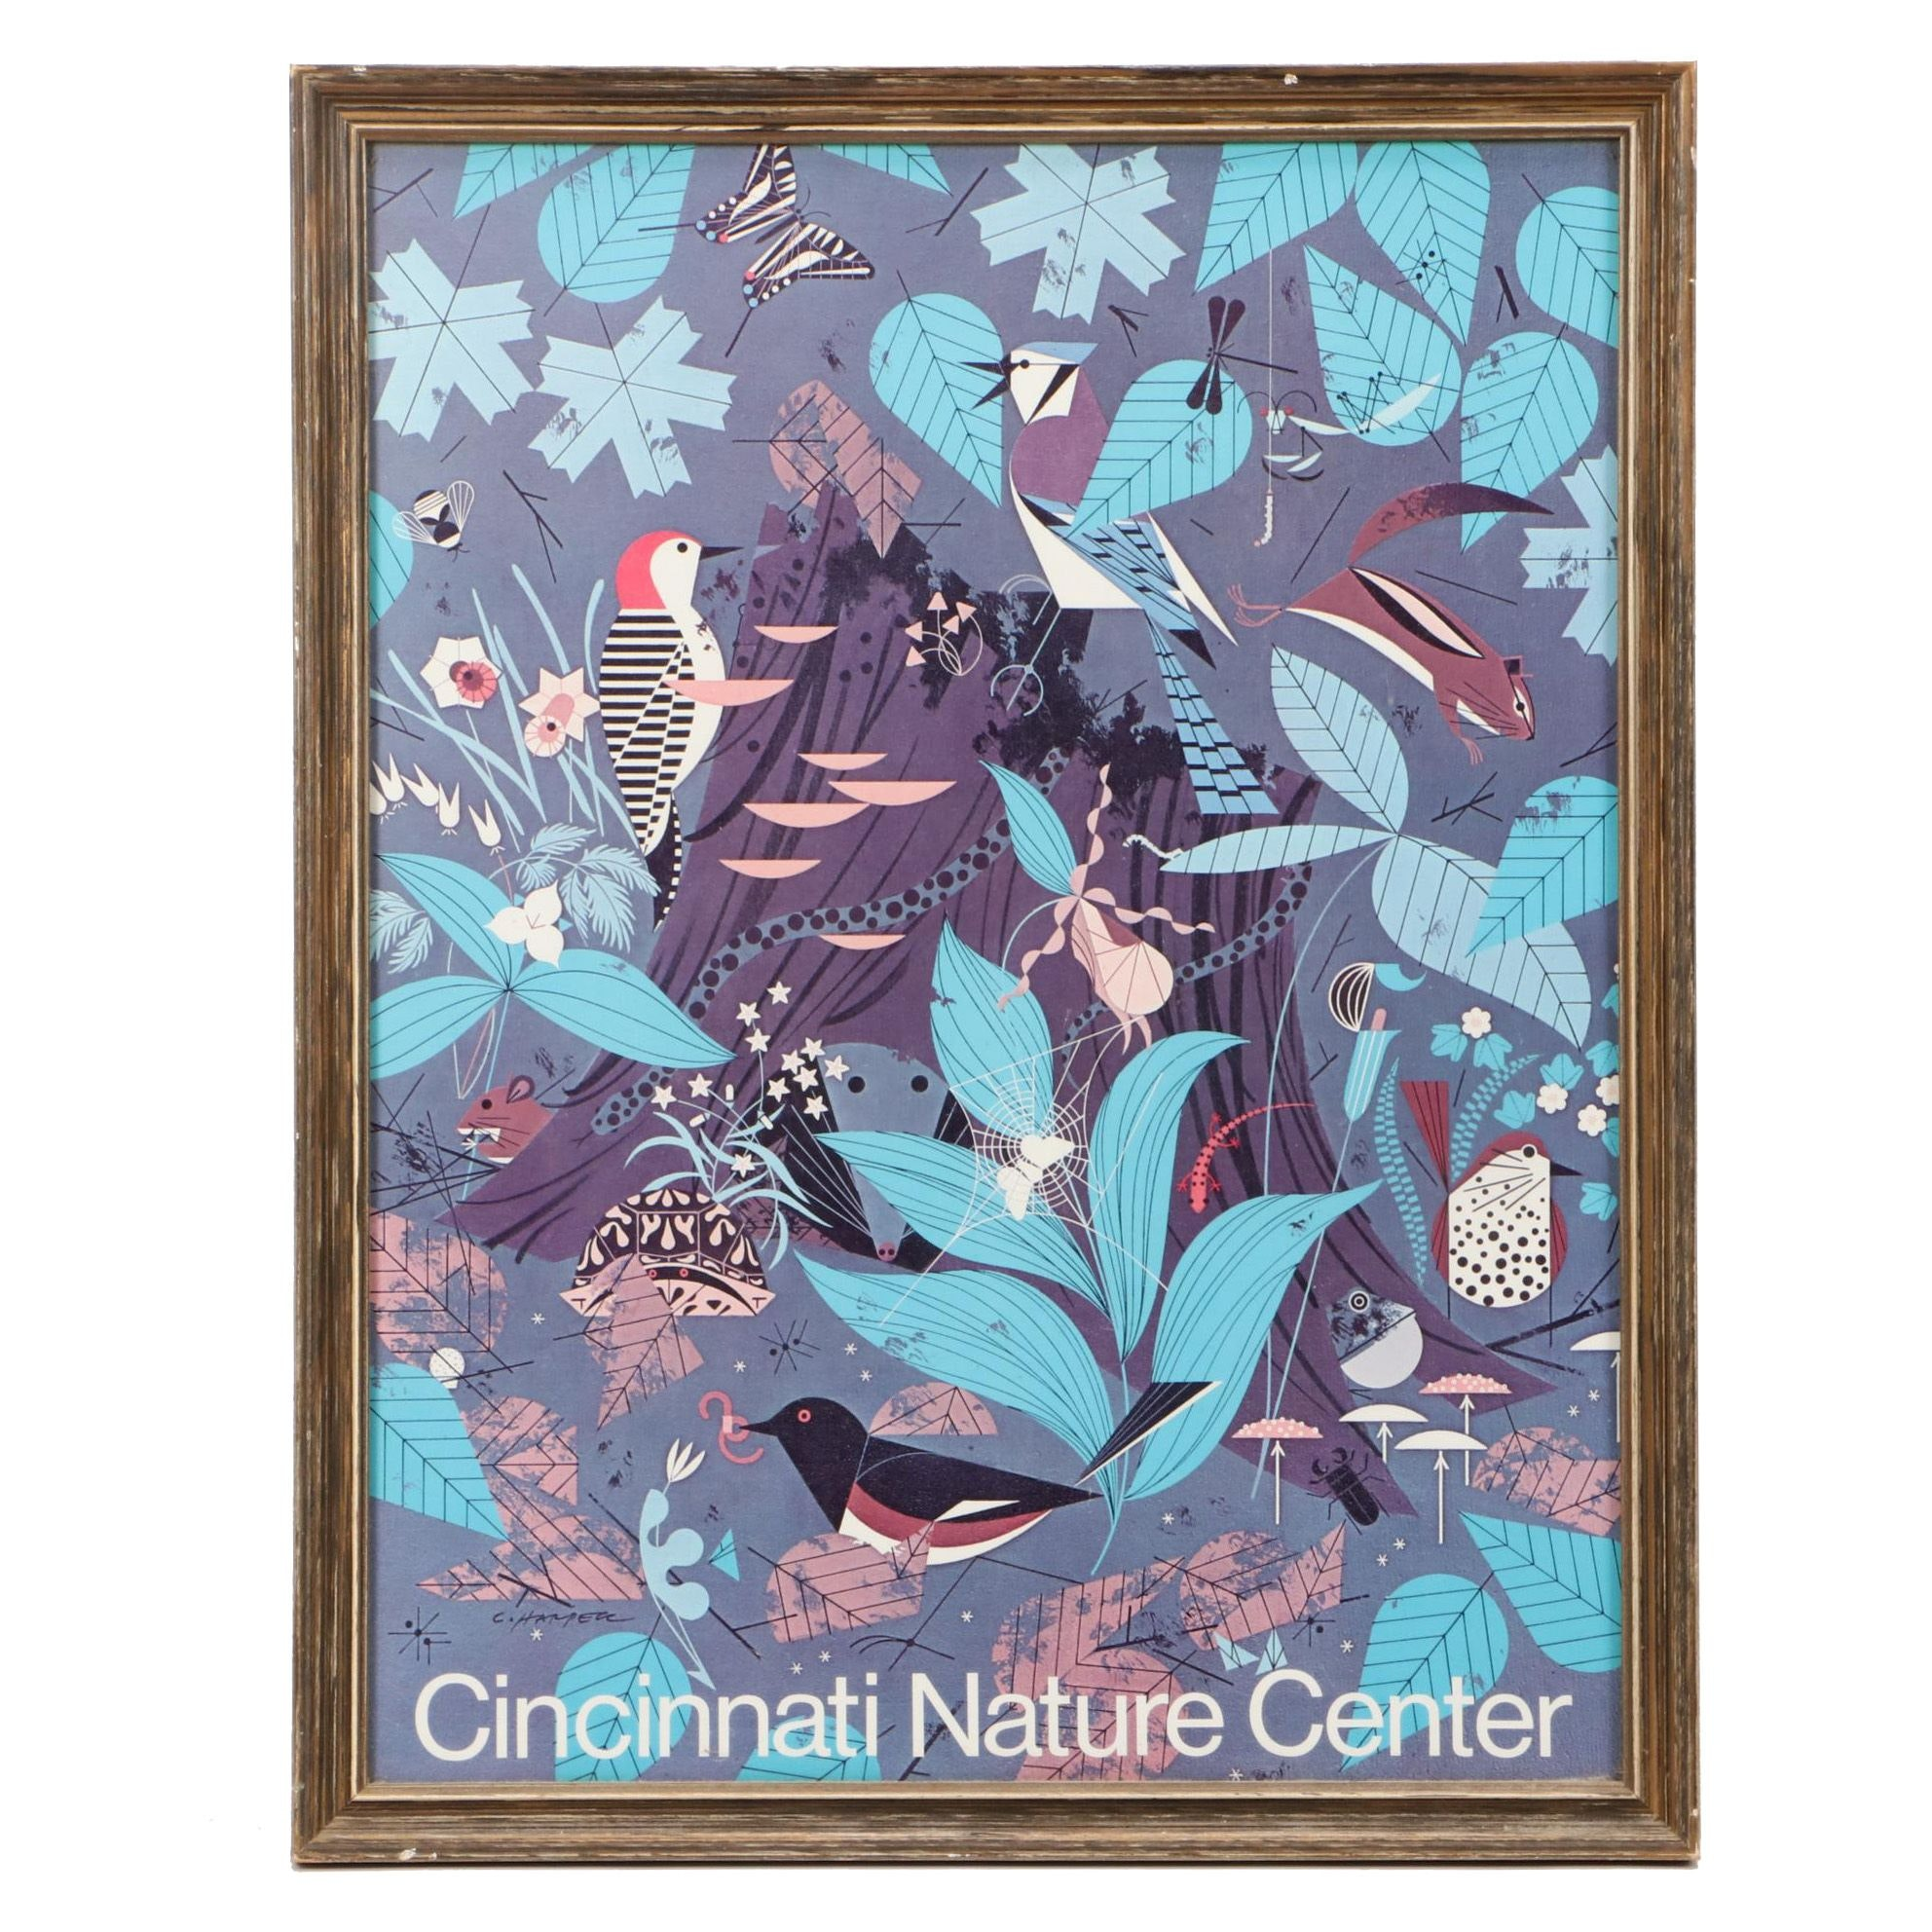 Cincinnati Nature Center Poster Designed by Charley Harper